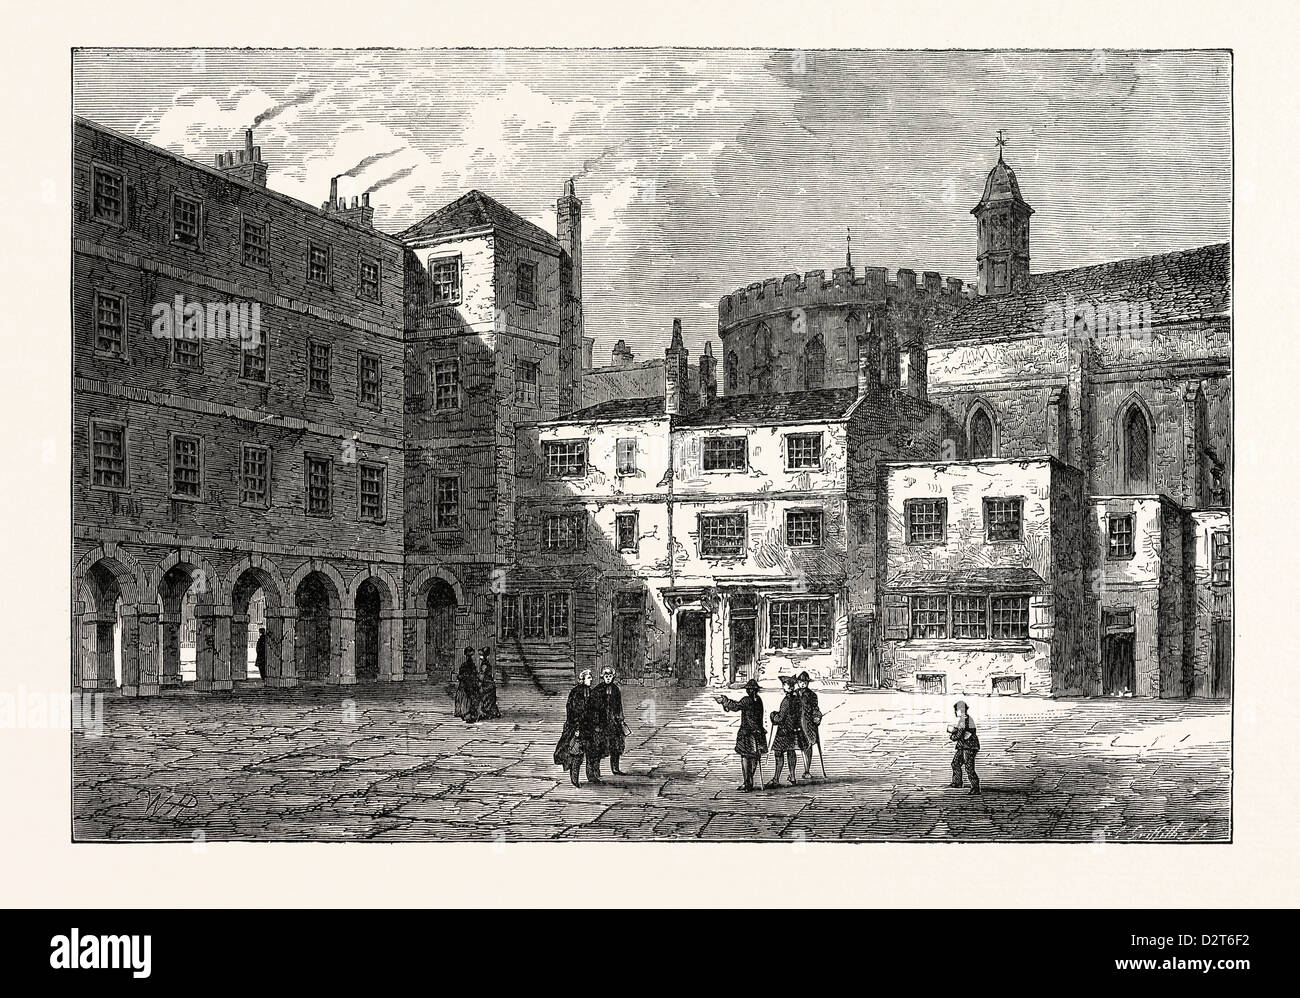 PART OF INNER TEMPLE 1800 LONDON - Stock Image